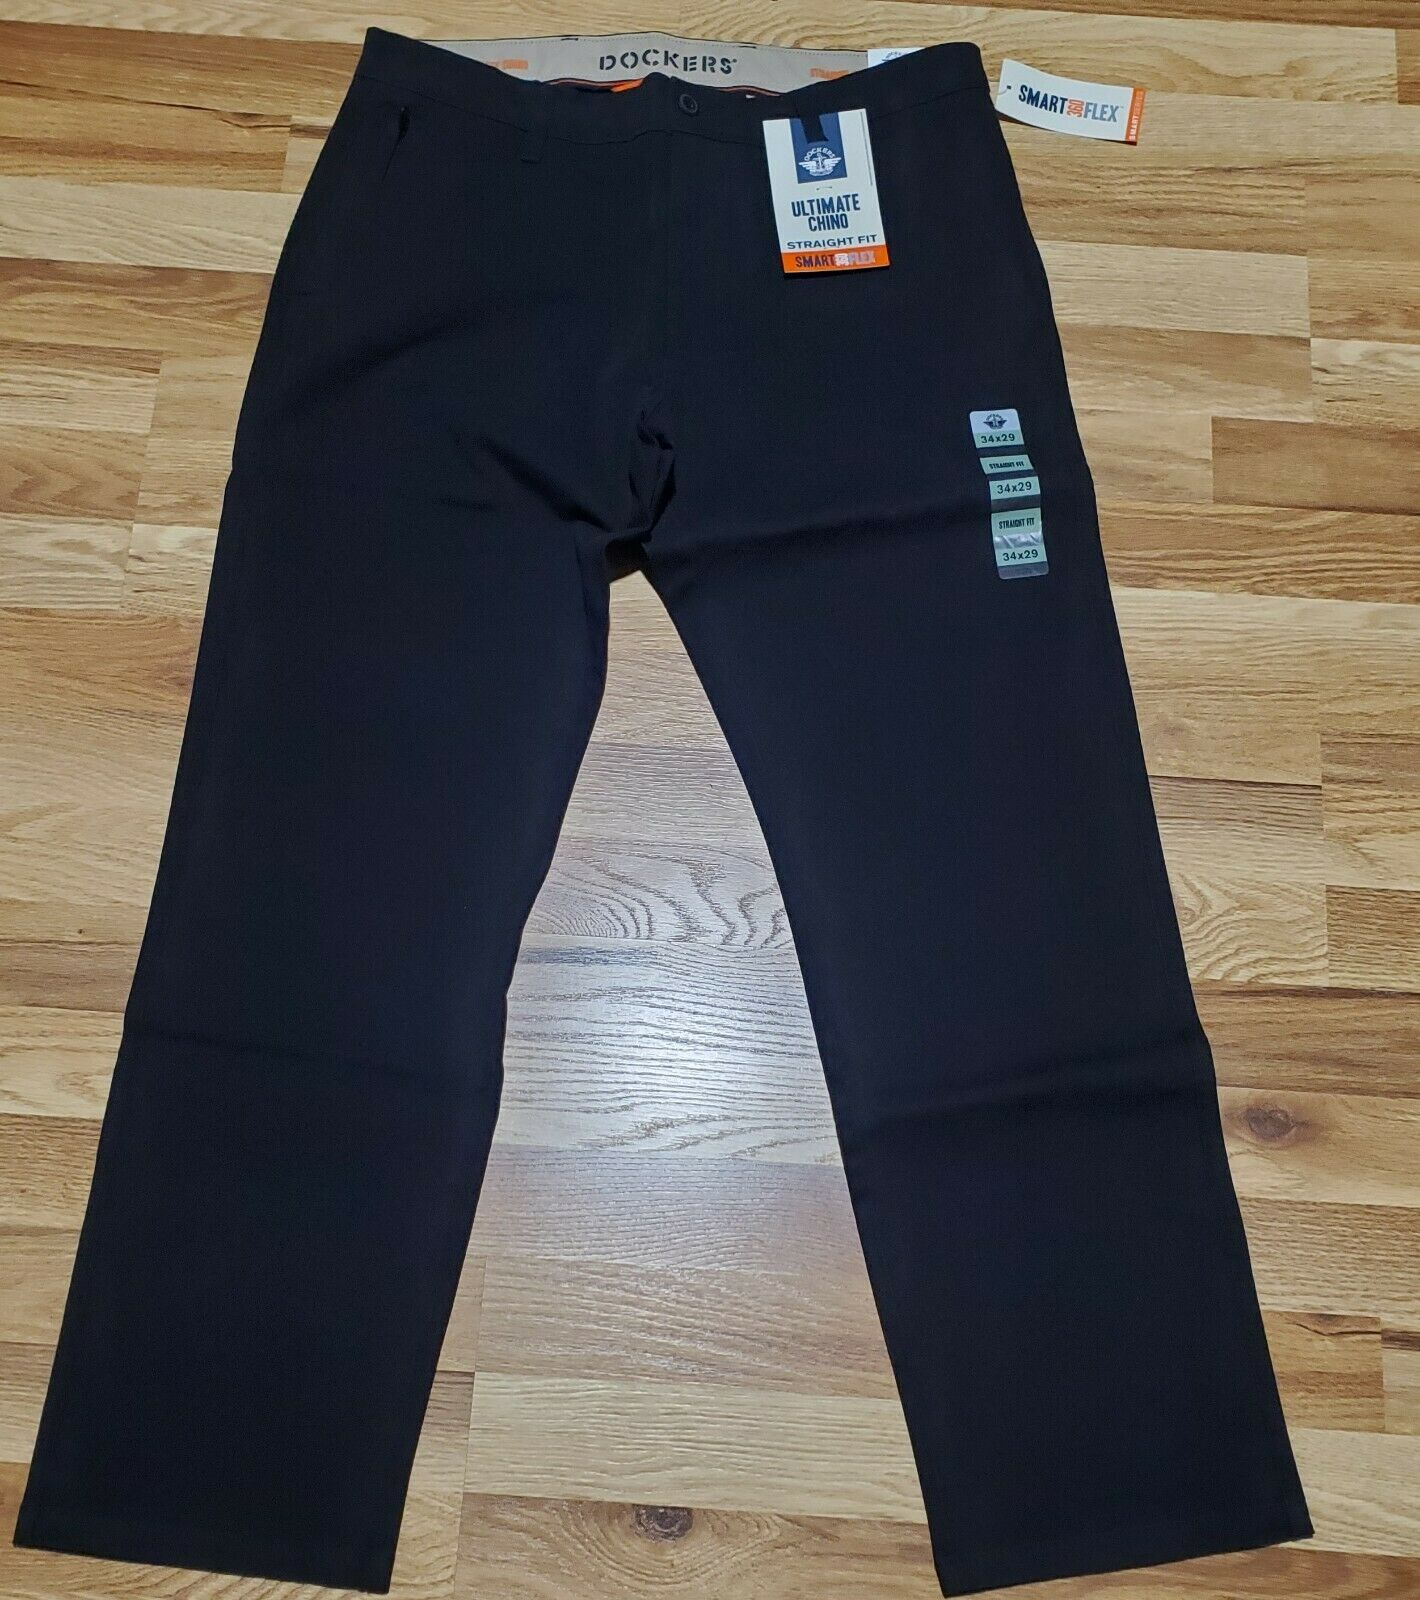 DOCKERS Ultimate Chino Pants Smart 360 Flex Straight Fit Fle